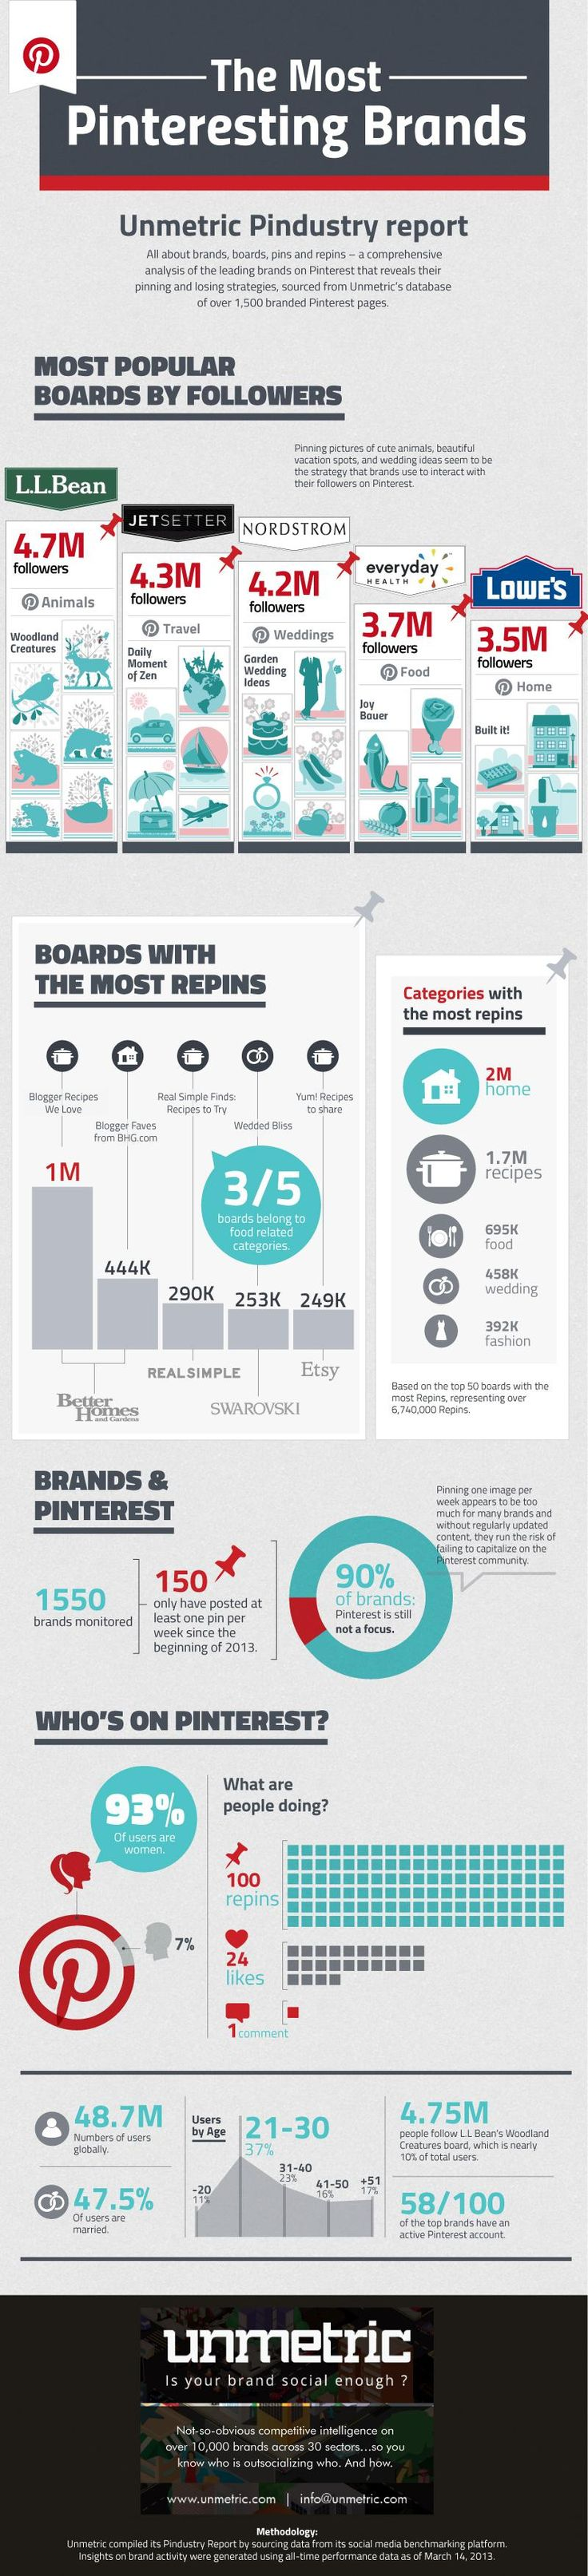 The Most Popular Branded Boards on Pinterest